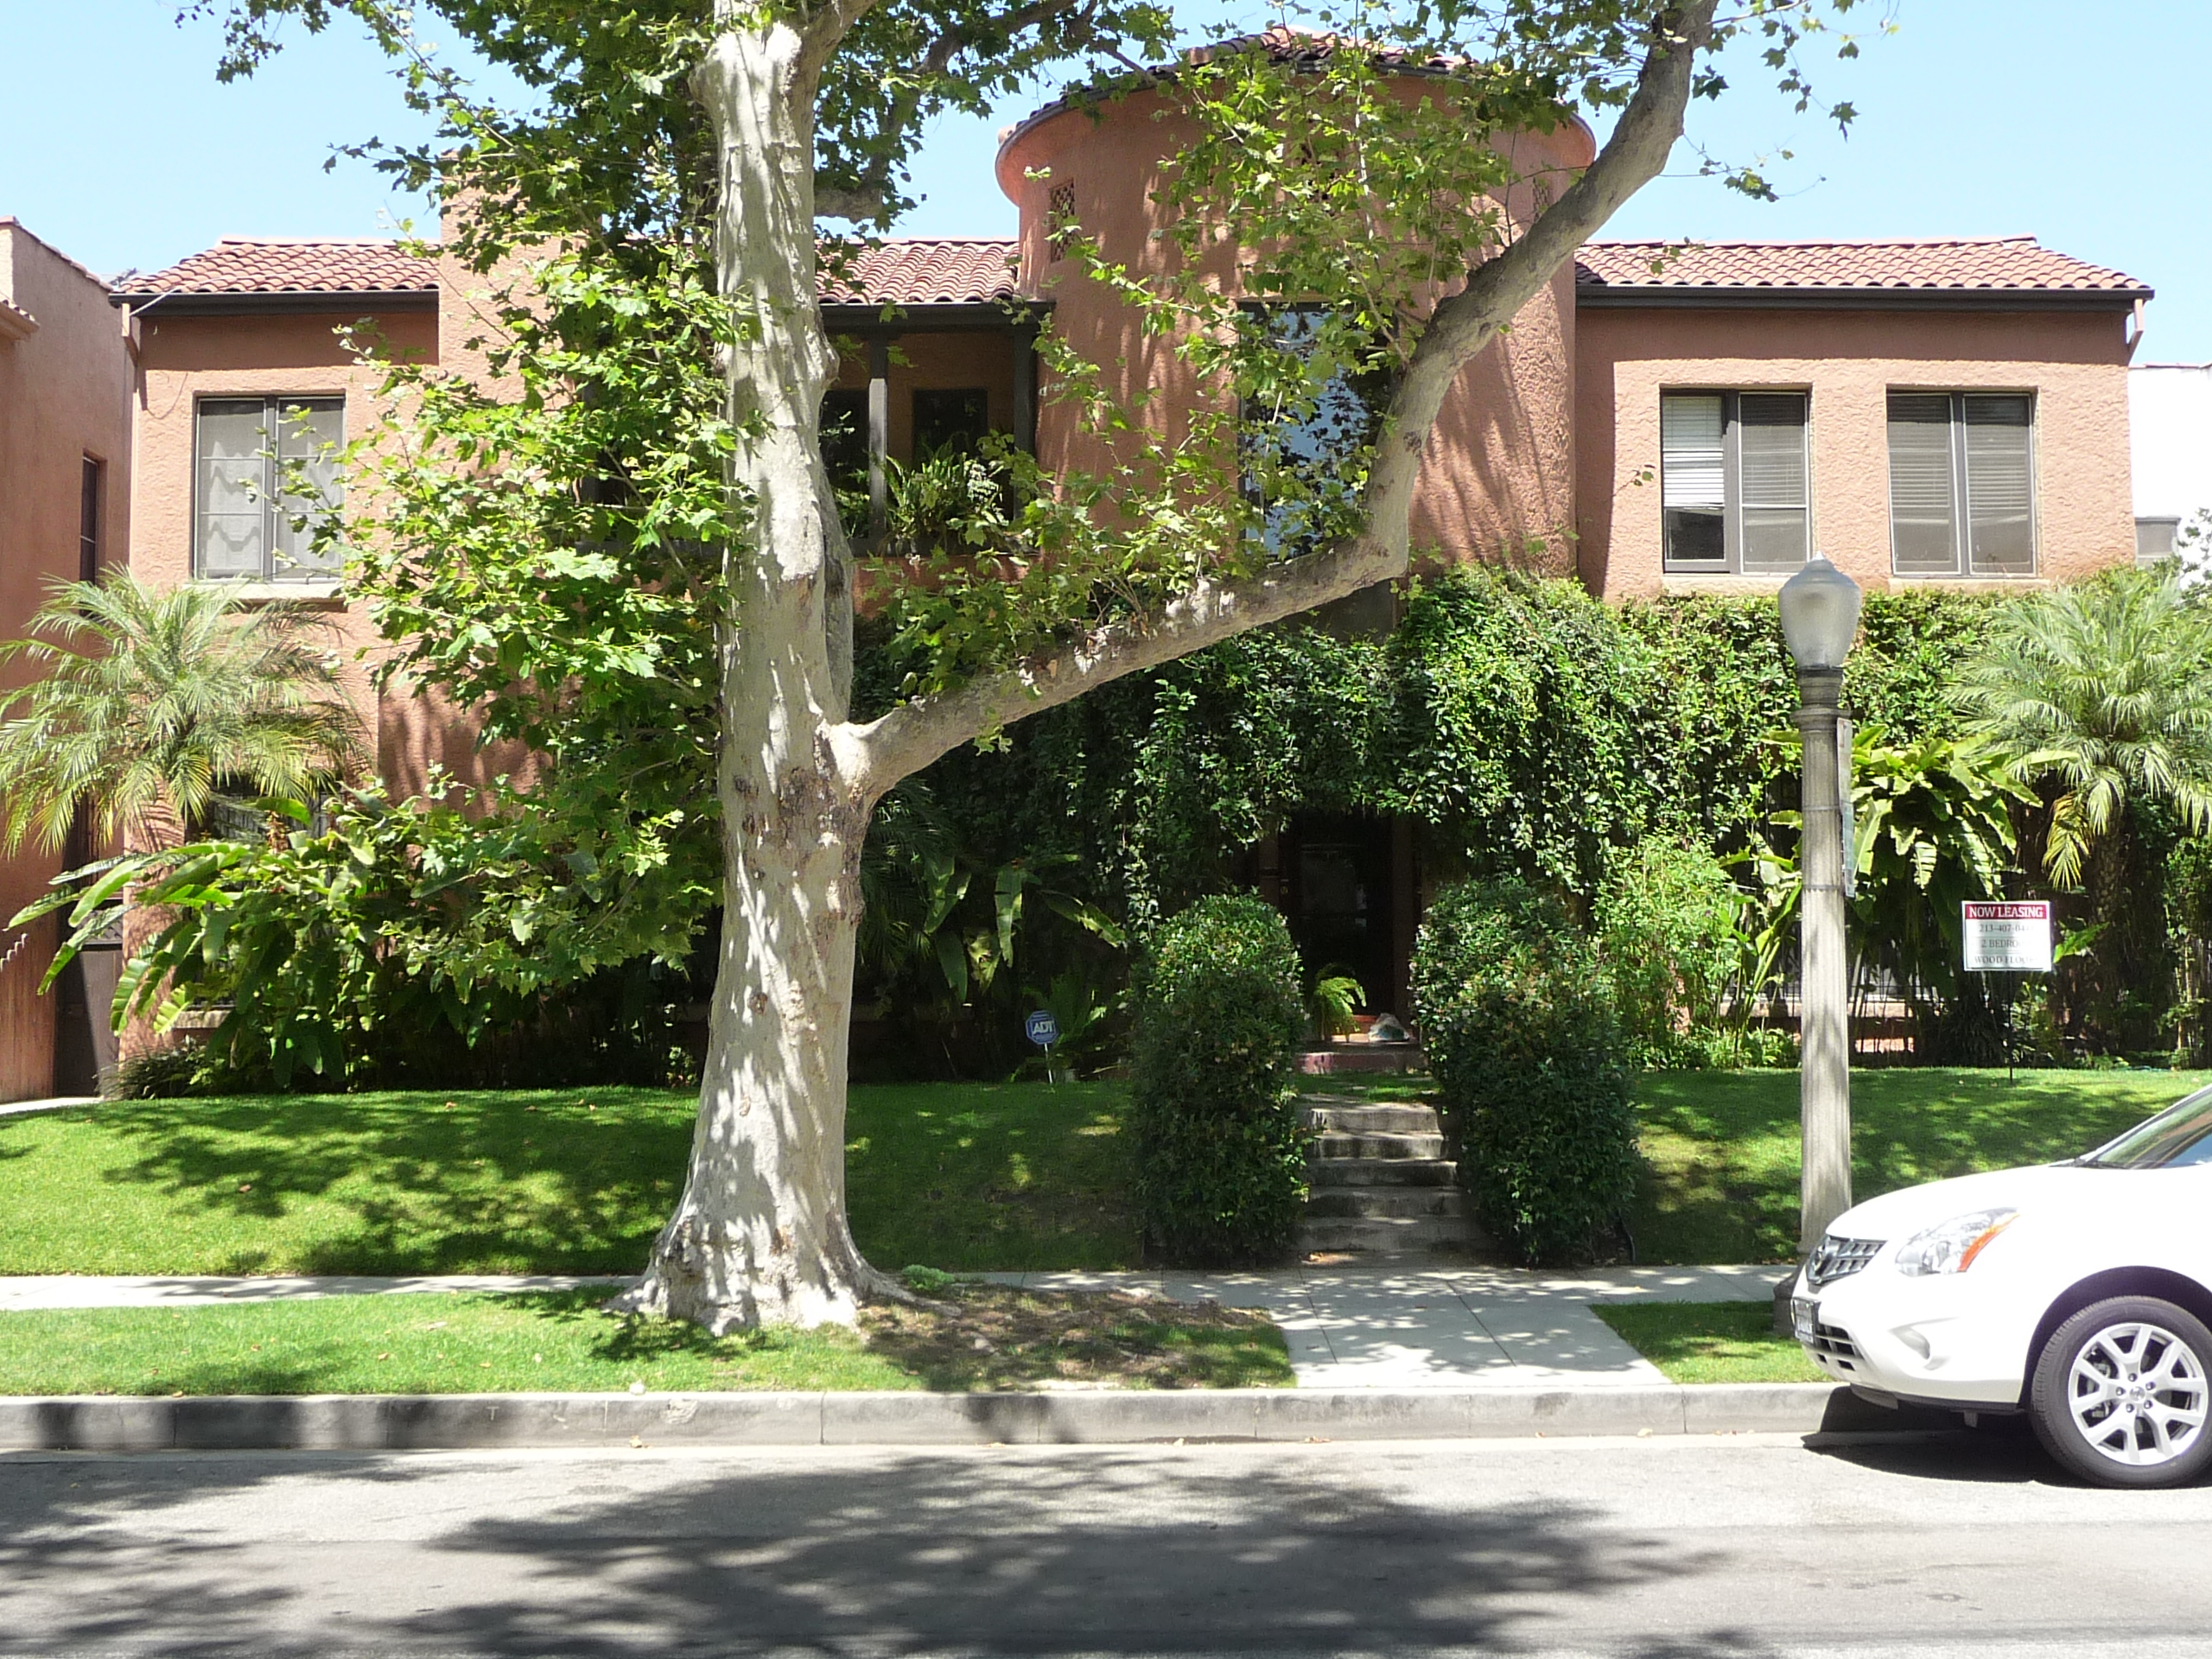 131 N SYCAMORE AVE - PHOTO